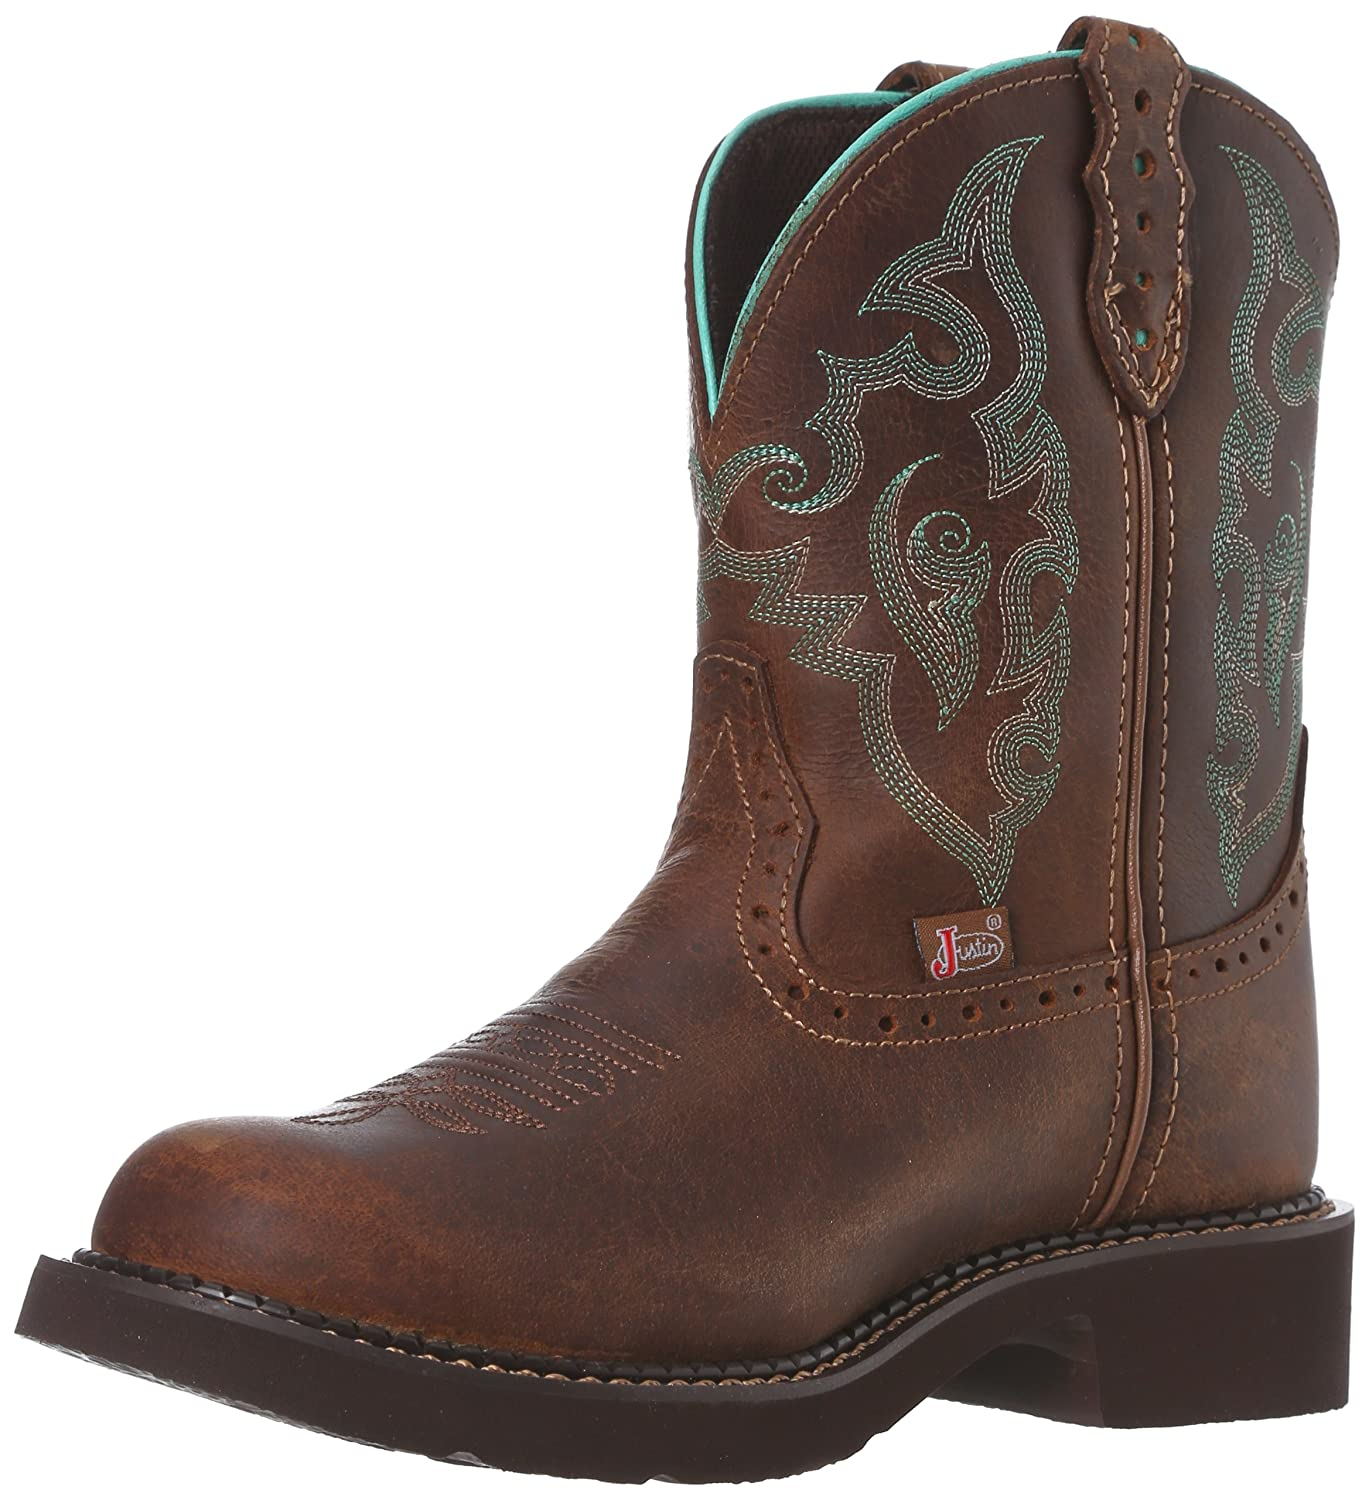 Justin Boots Women's Gypsy Collection Western Boot B008B115EU 7 B(M) US|Tan Jaguar